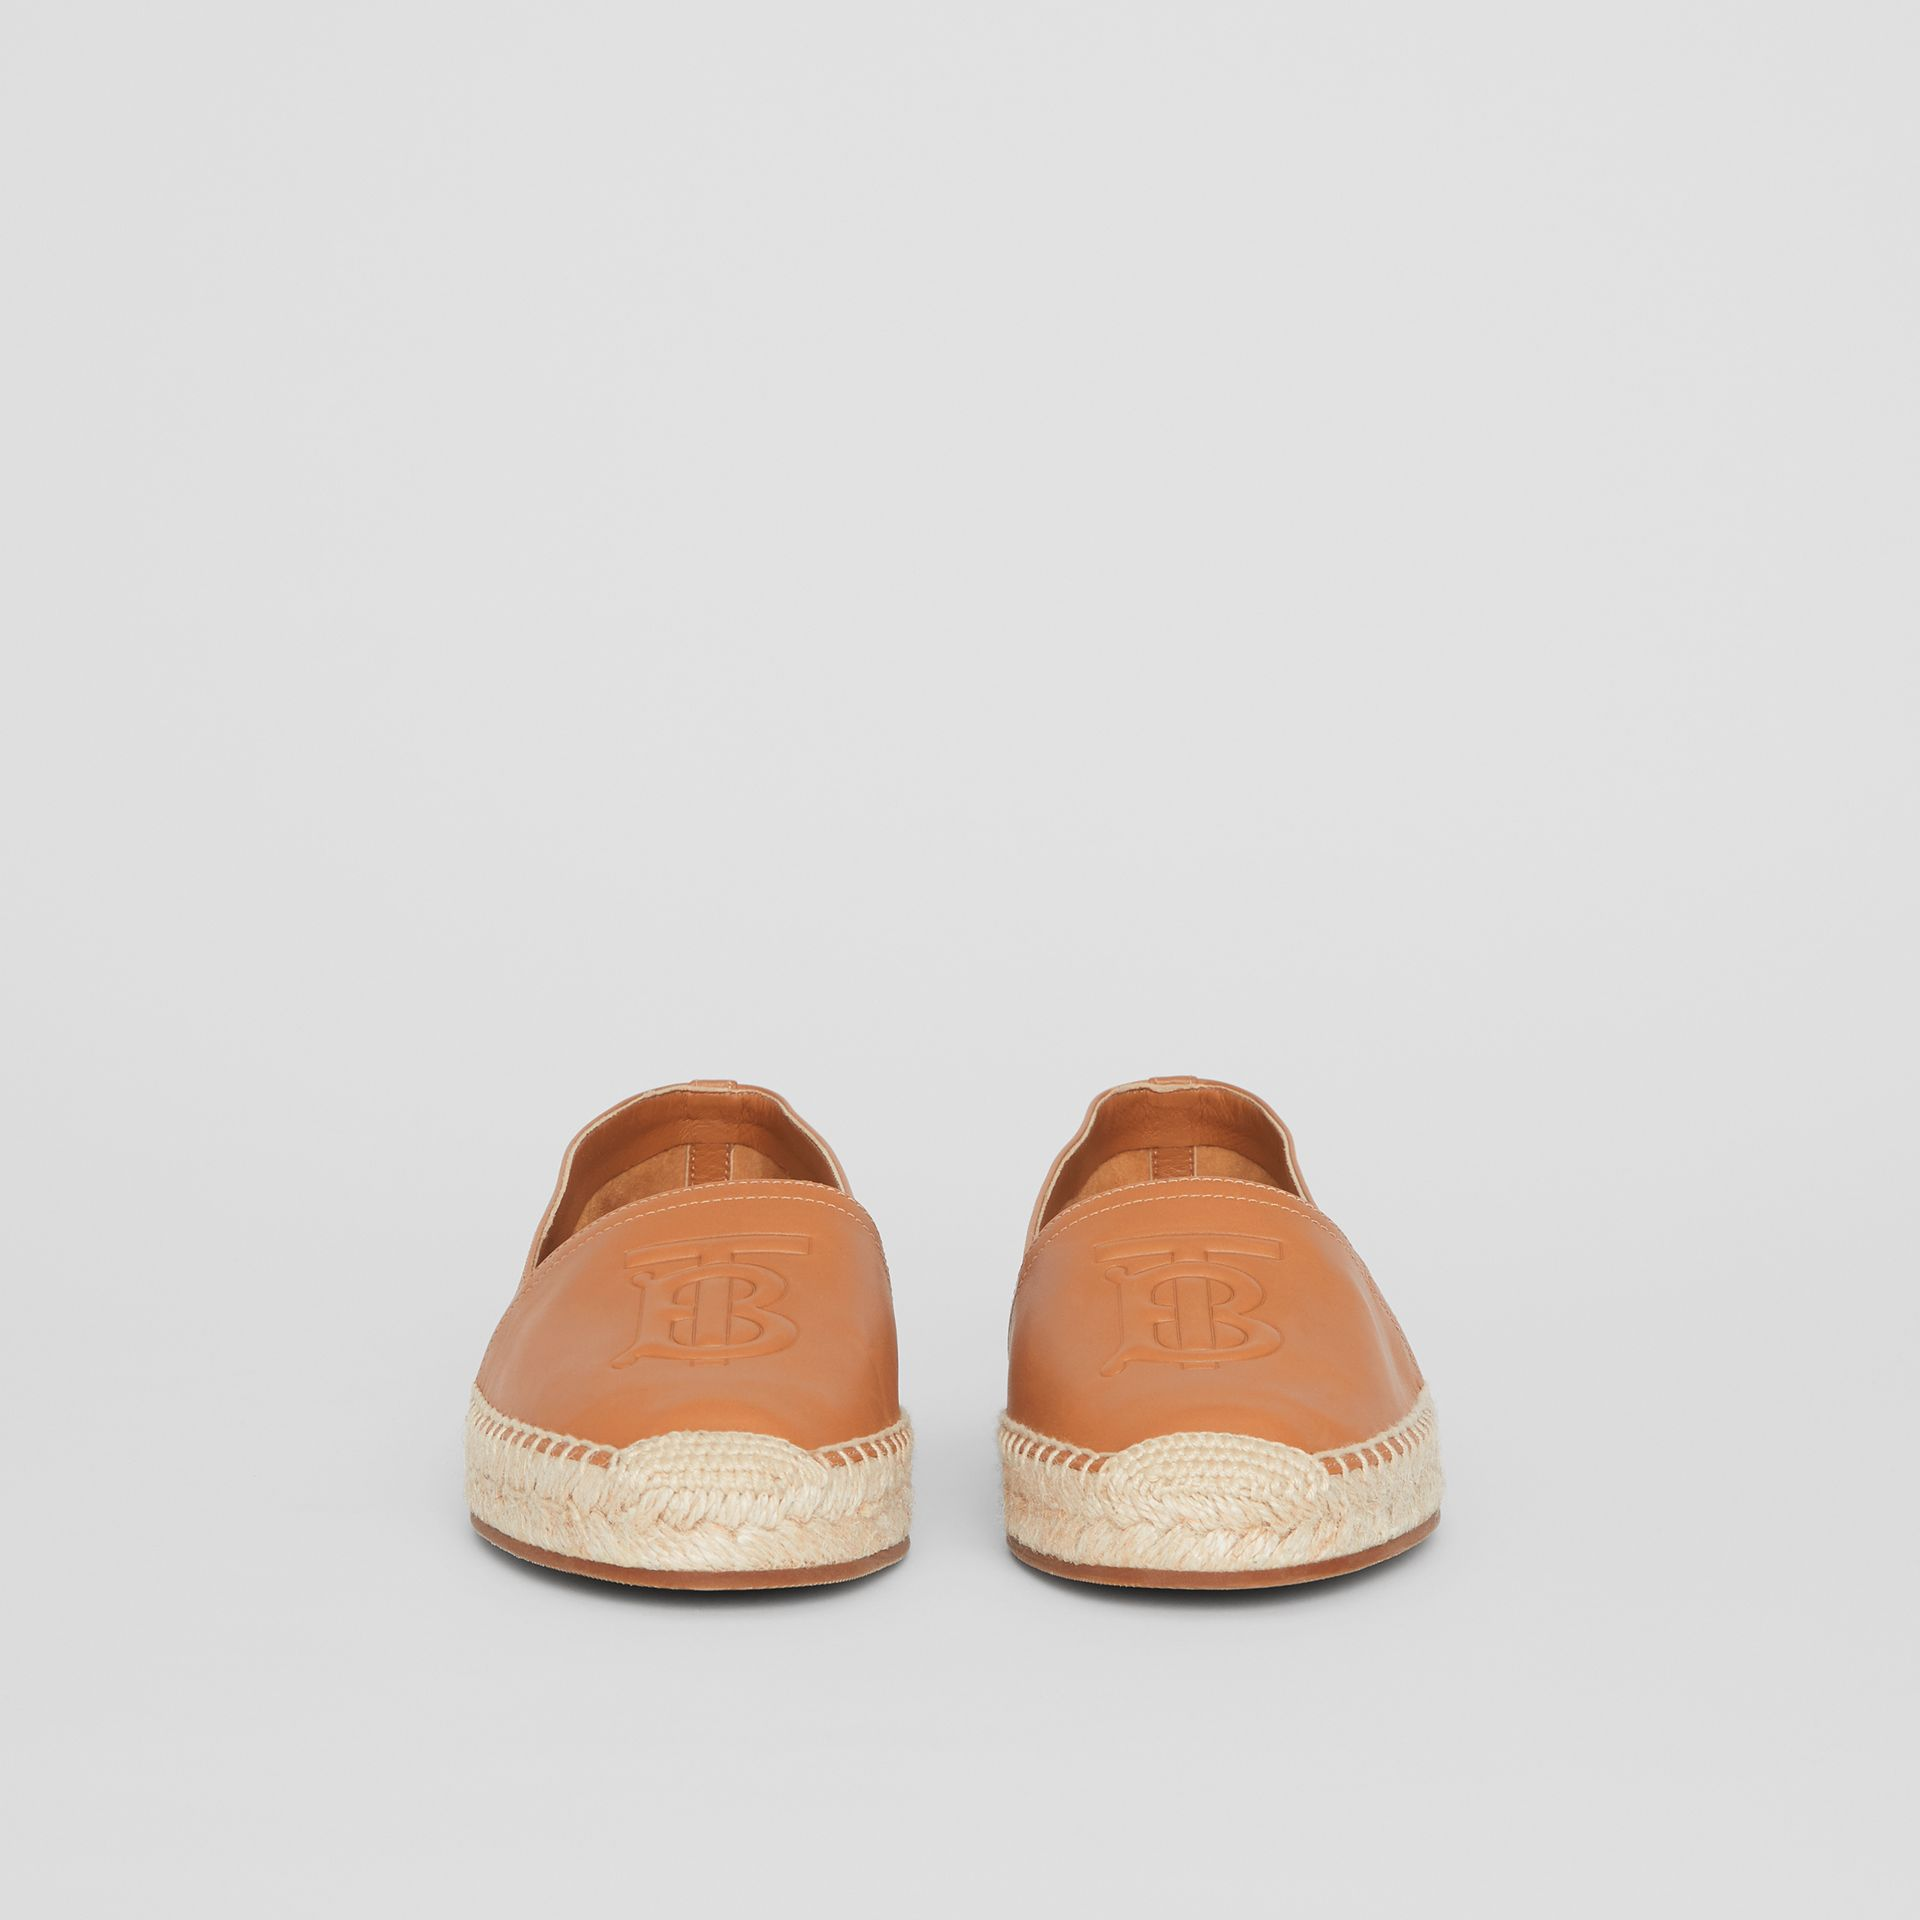 Monogram Motif Lambskin Espadrilles in Camel - Women | Burberry United Kingdom - gallery image 3